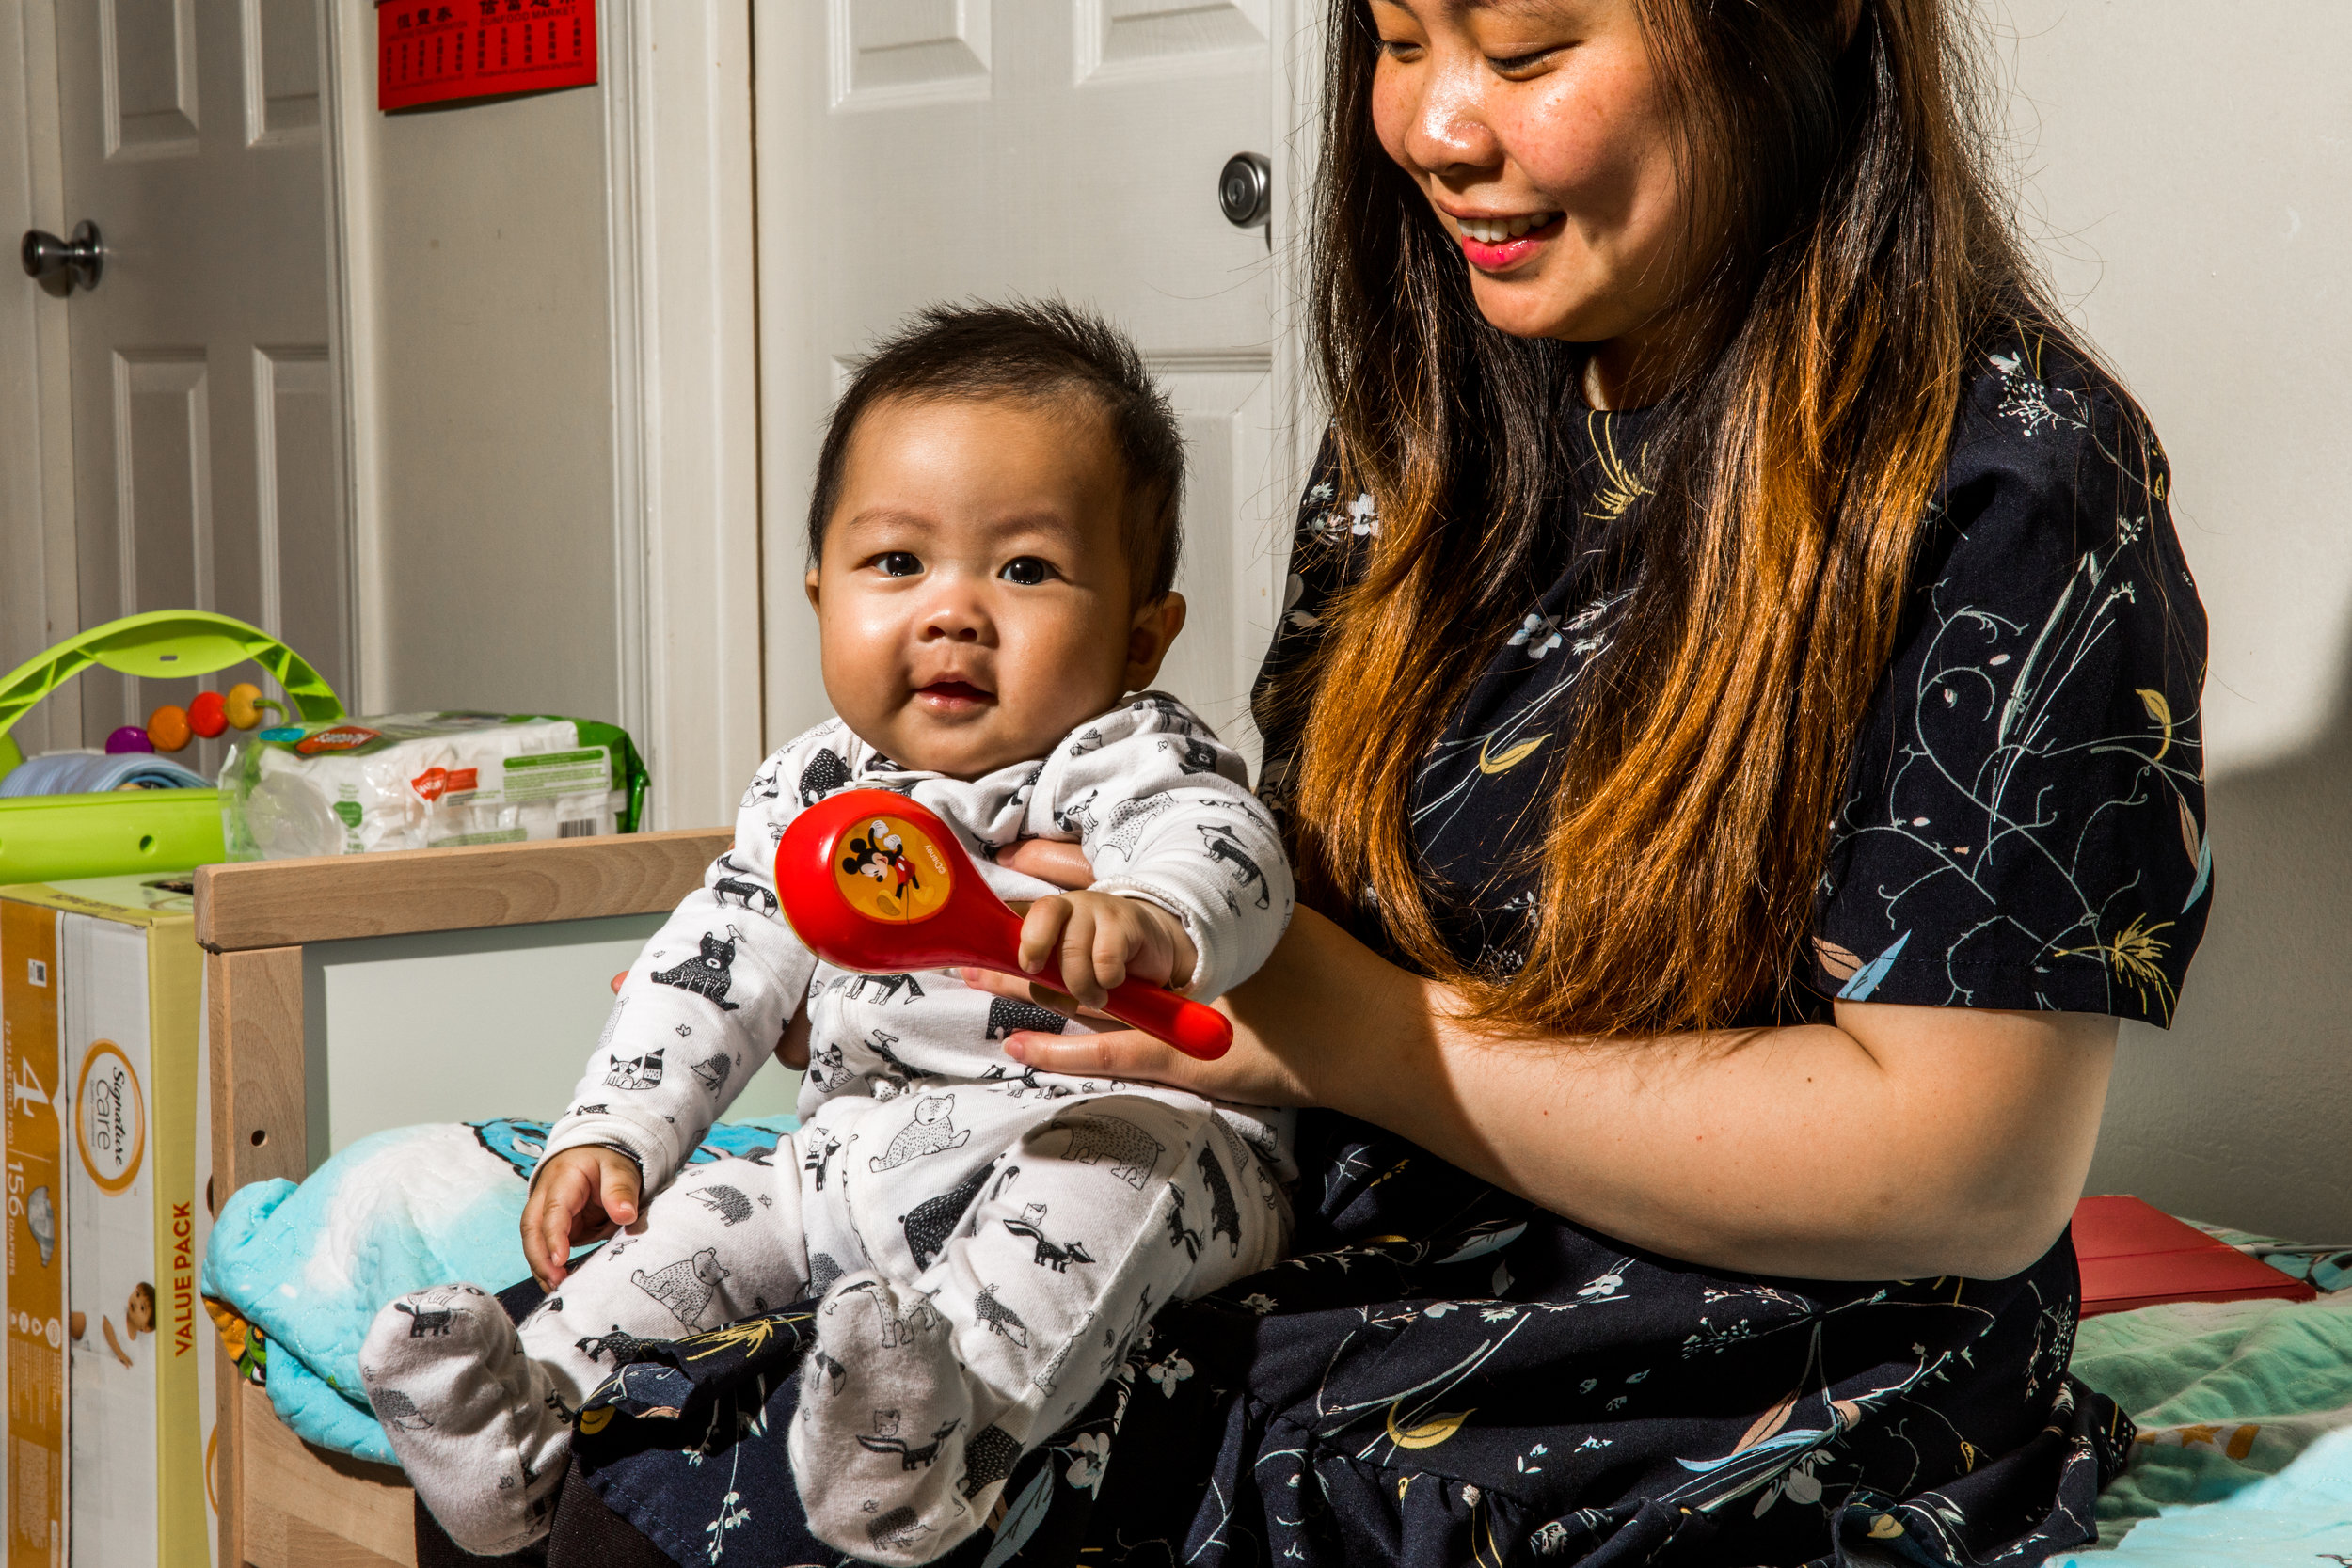 Ying has two children in diapers. Baby Daniel is 5 months old and wears a size 4 diaper. They receive diapers from Help a Mother Out and live in San Francisco.